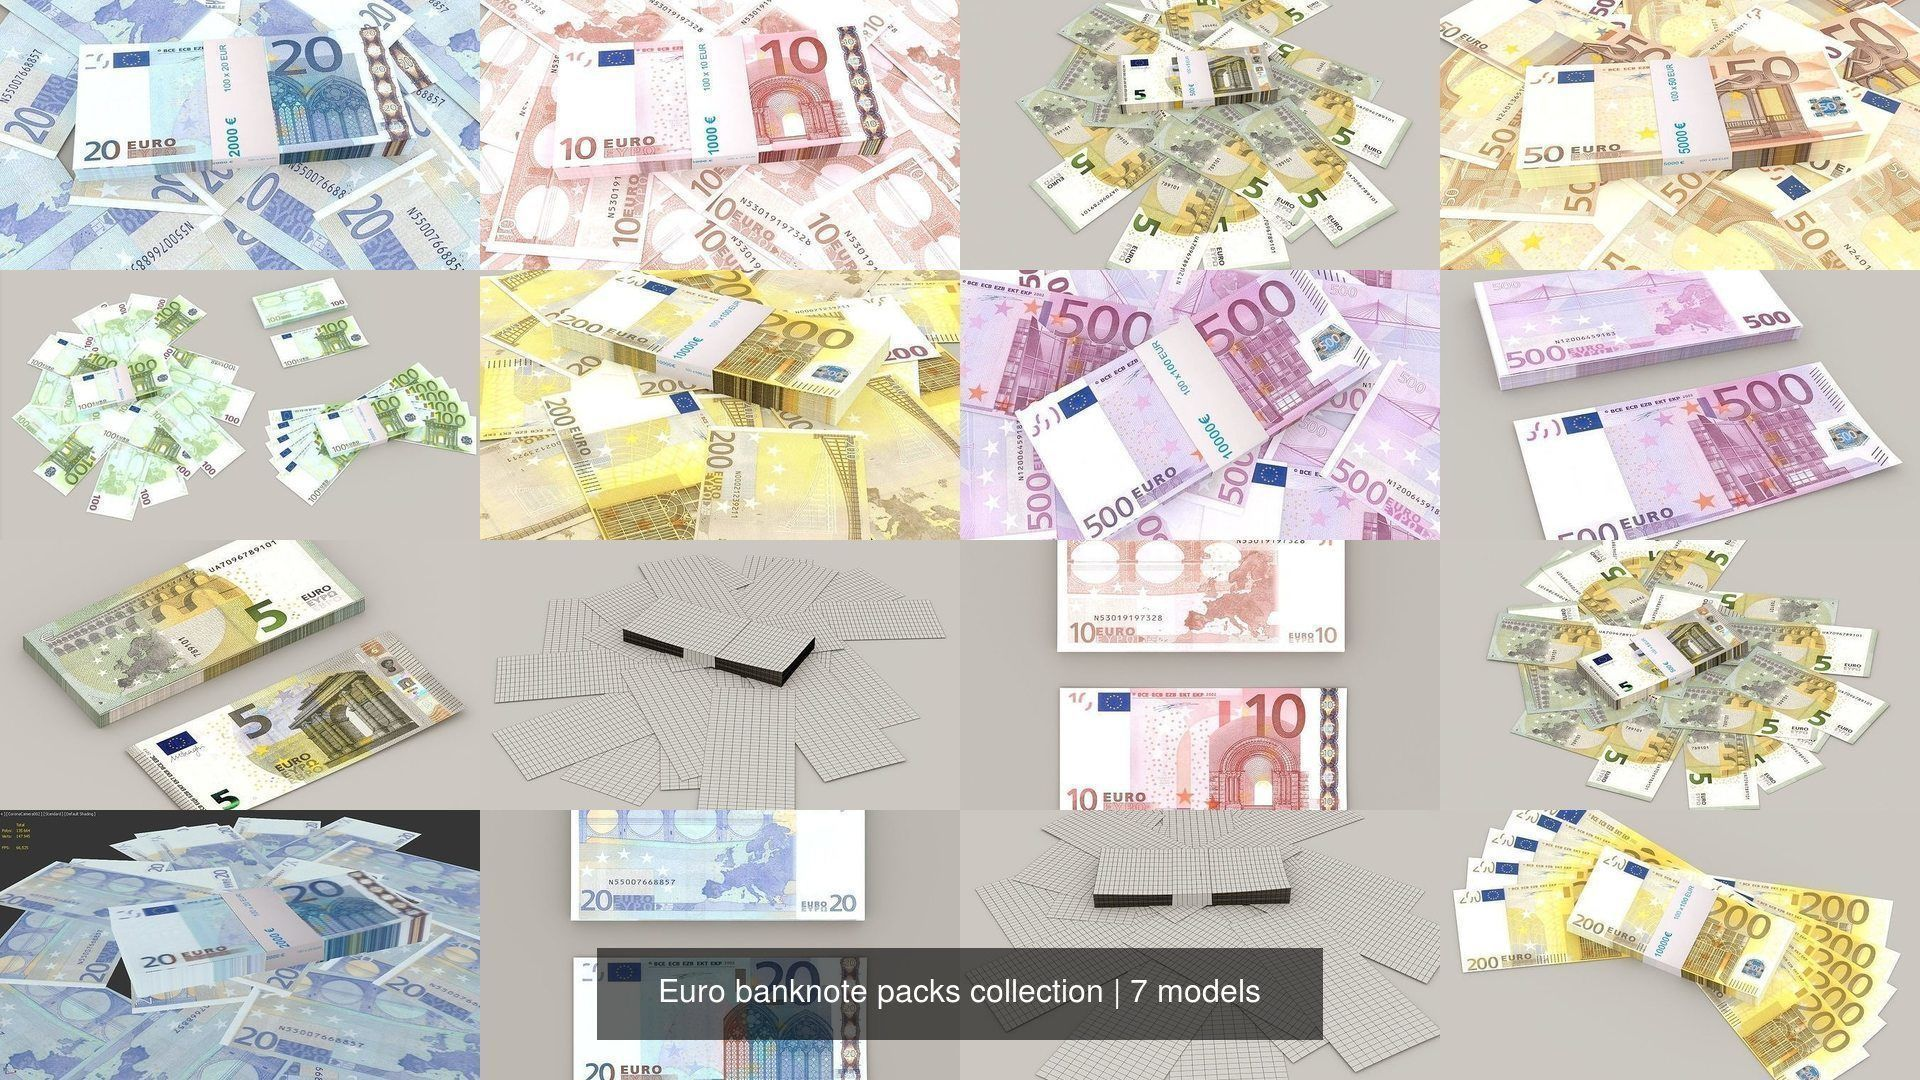 Euro banknote packs collection